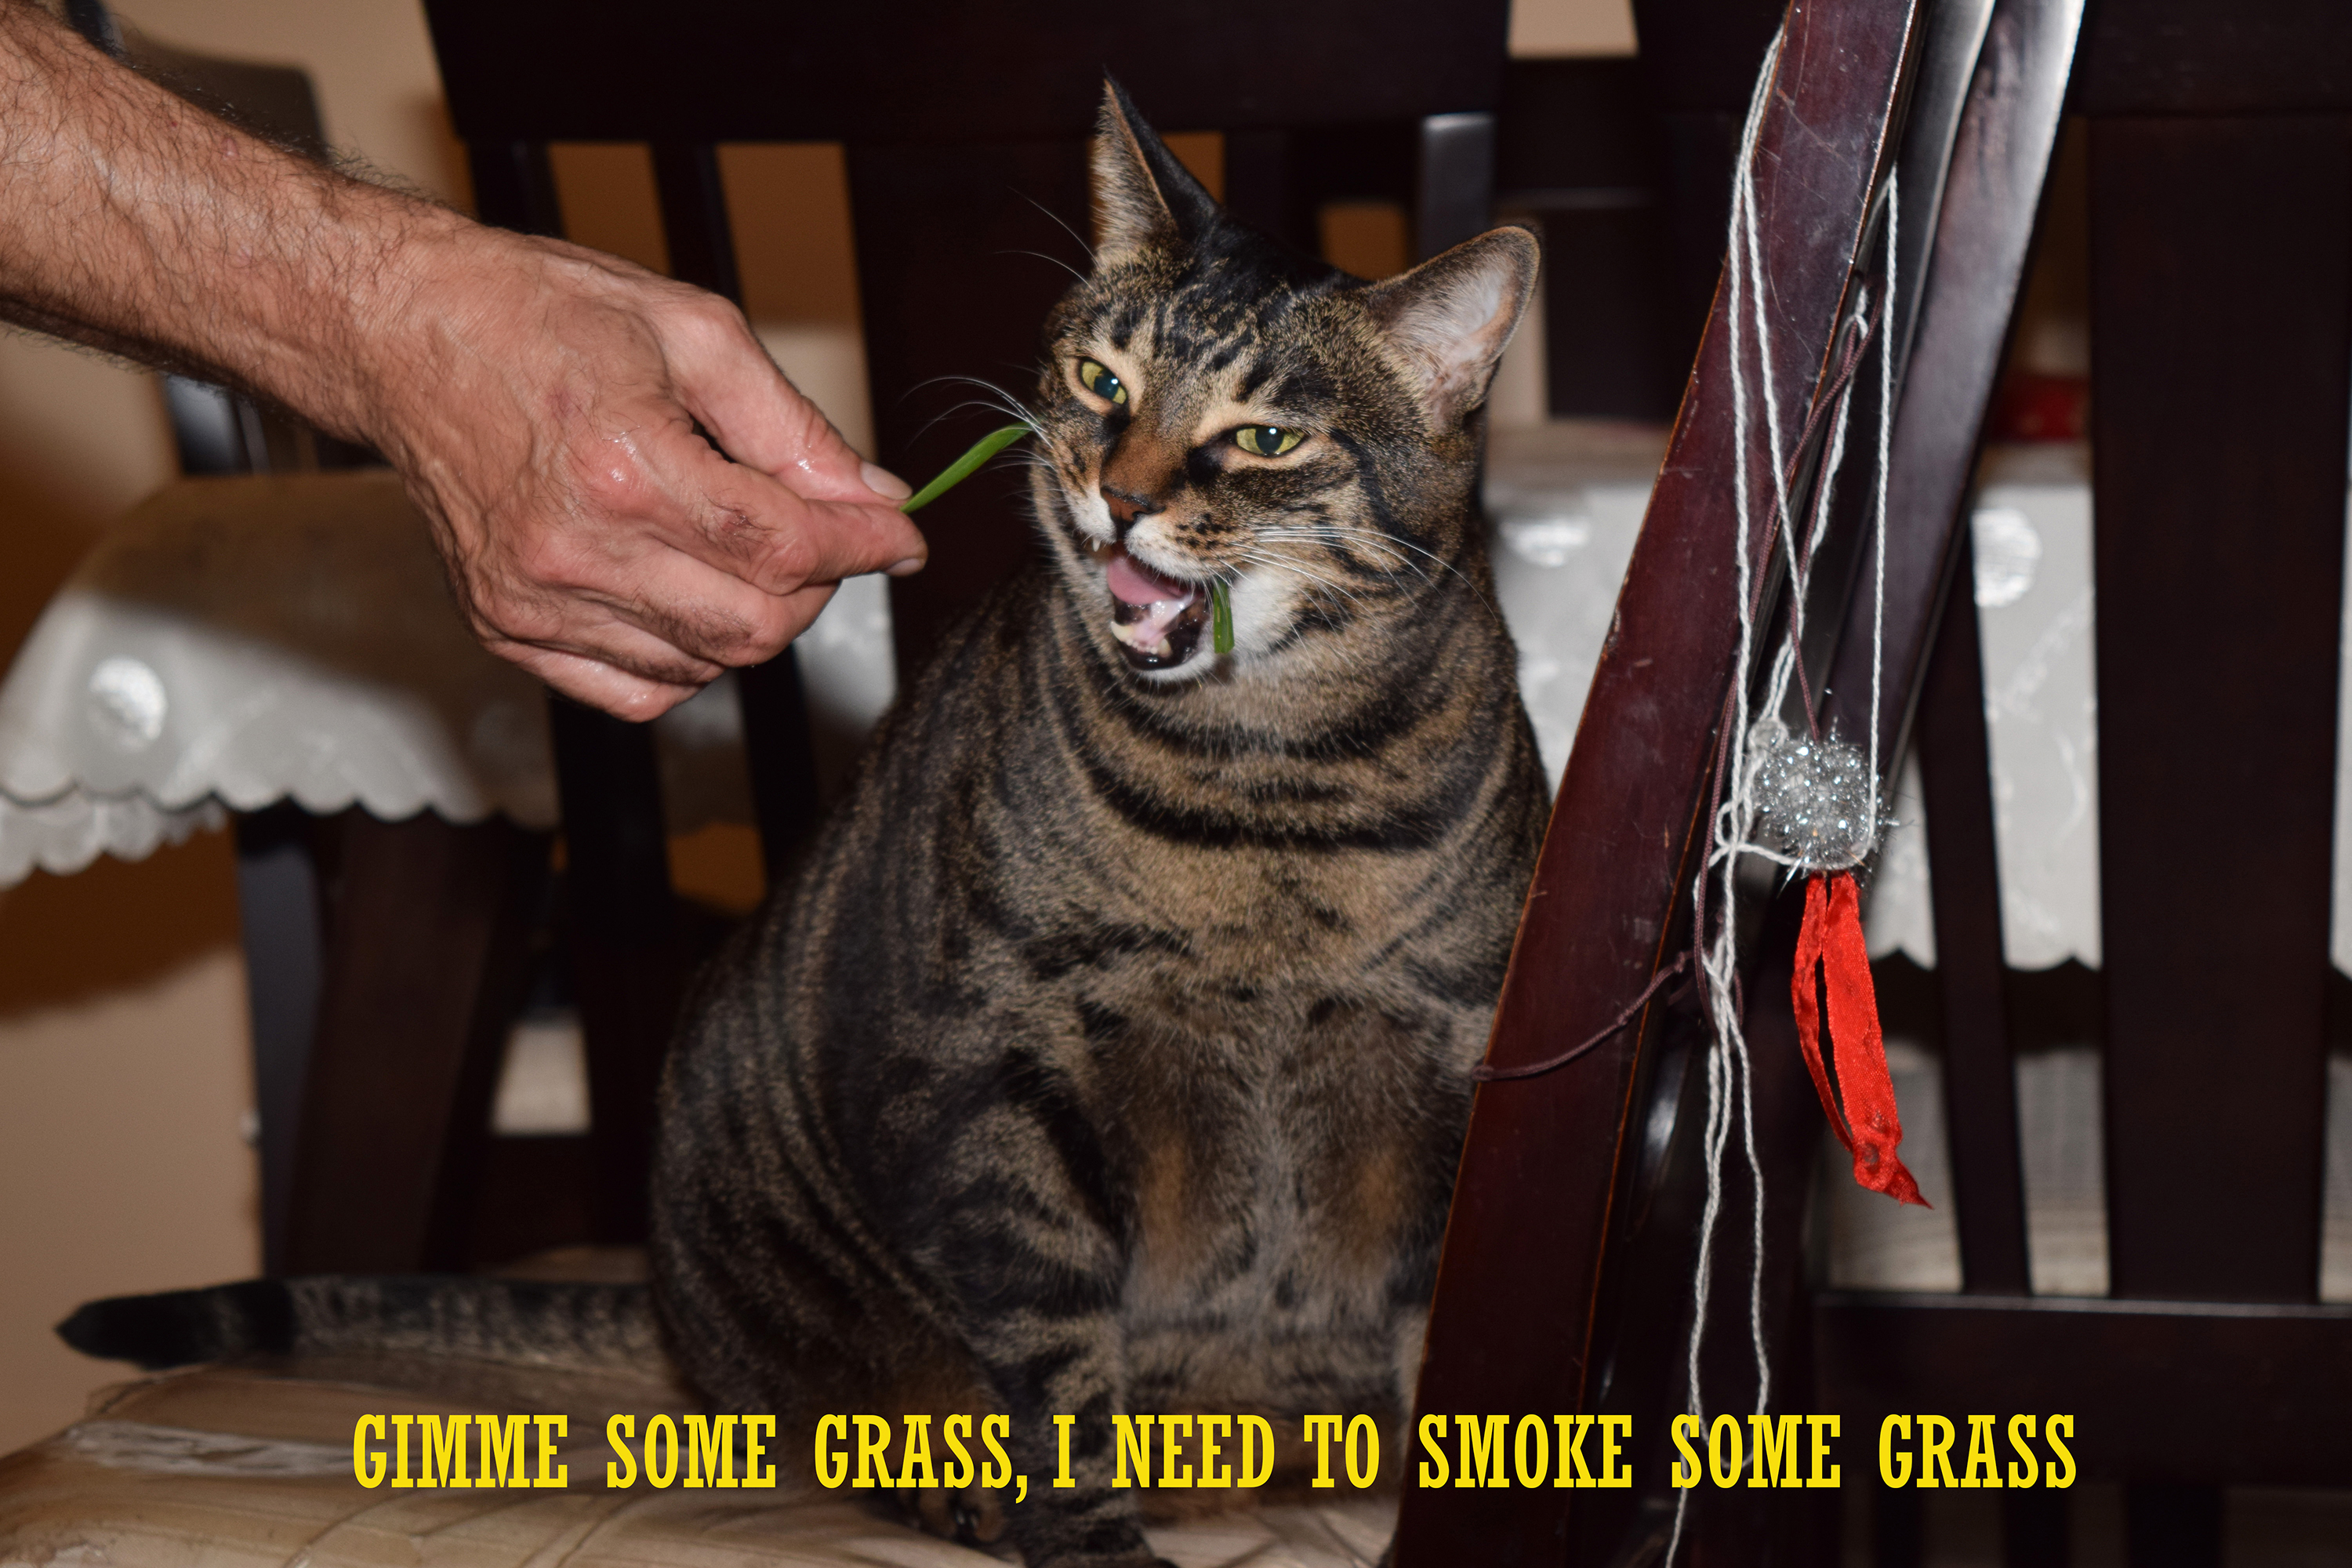 NEED TO SMOKE SOME GRASS jpeg resized for cats site.jpg